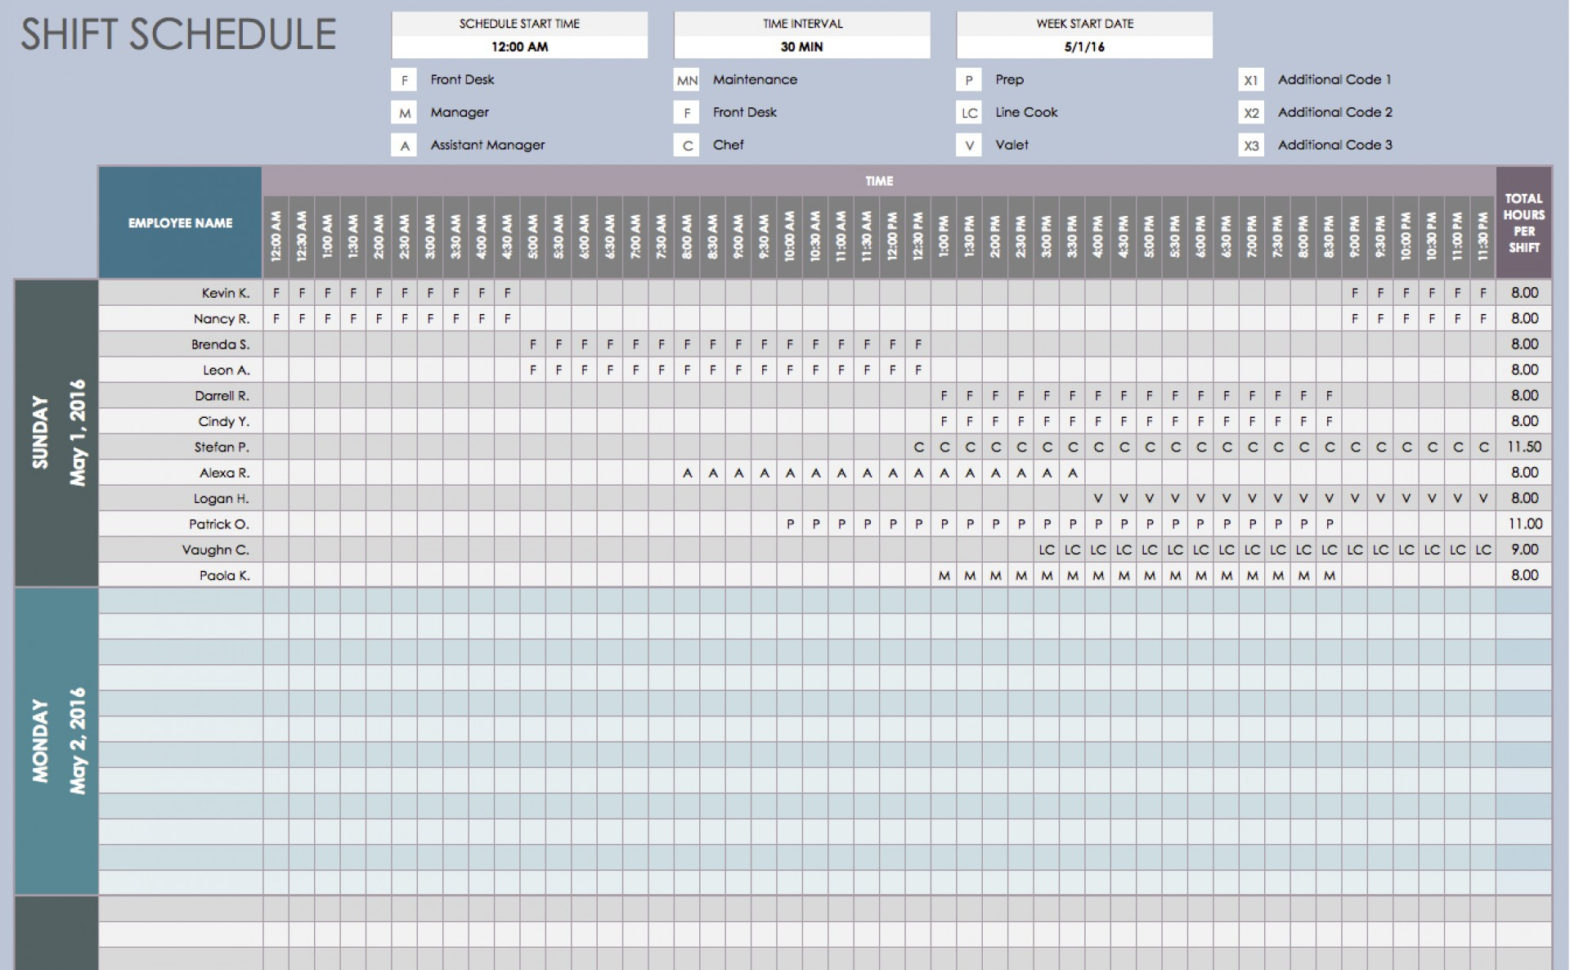 Call Center Shift Scheduling Excel Spreadsheet Intended For 016 Daily Work Schedule Excel Template Jpg ~ Ulyssesroom